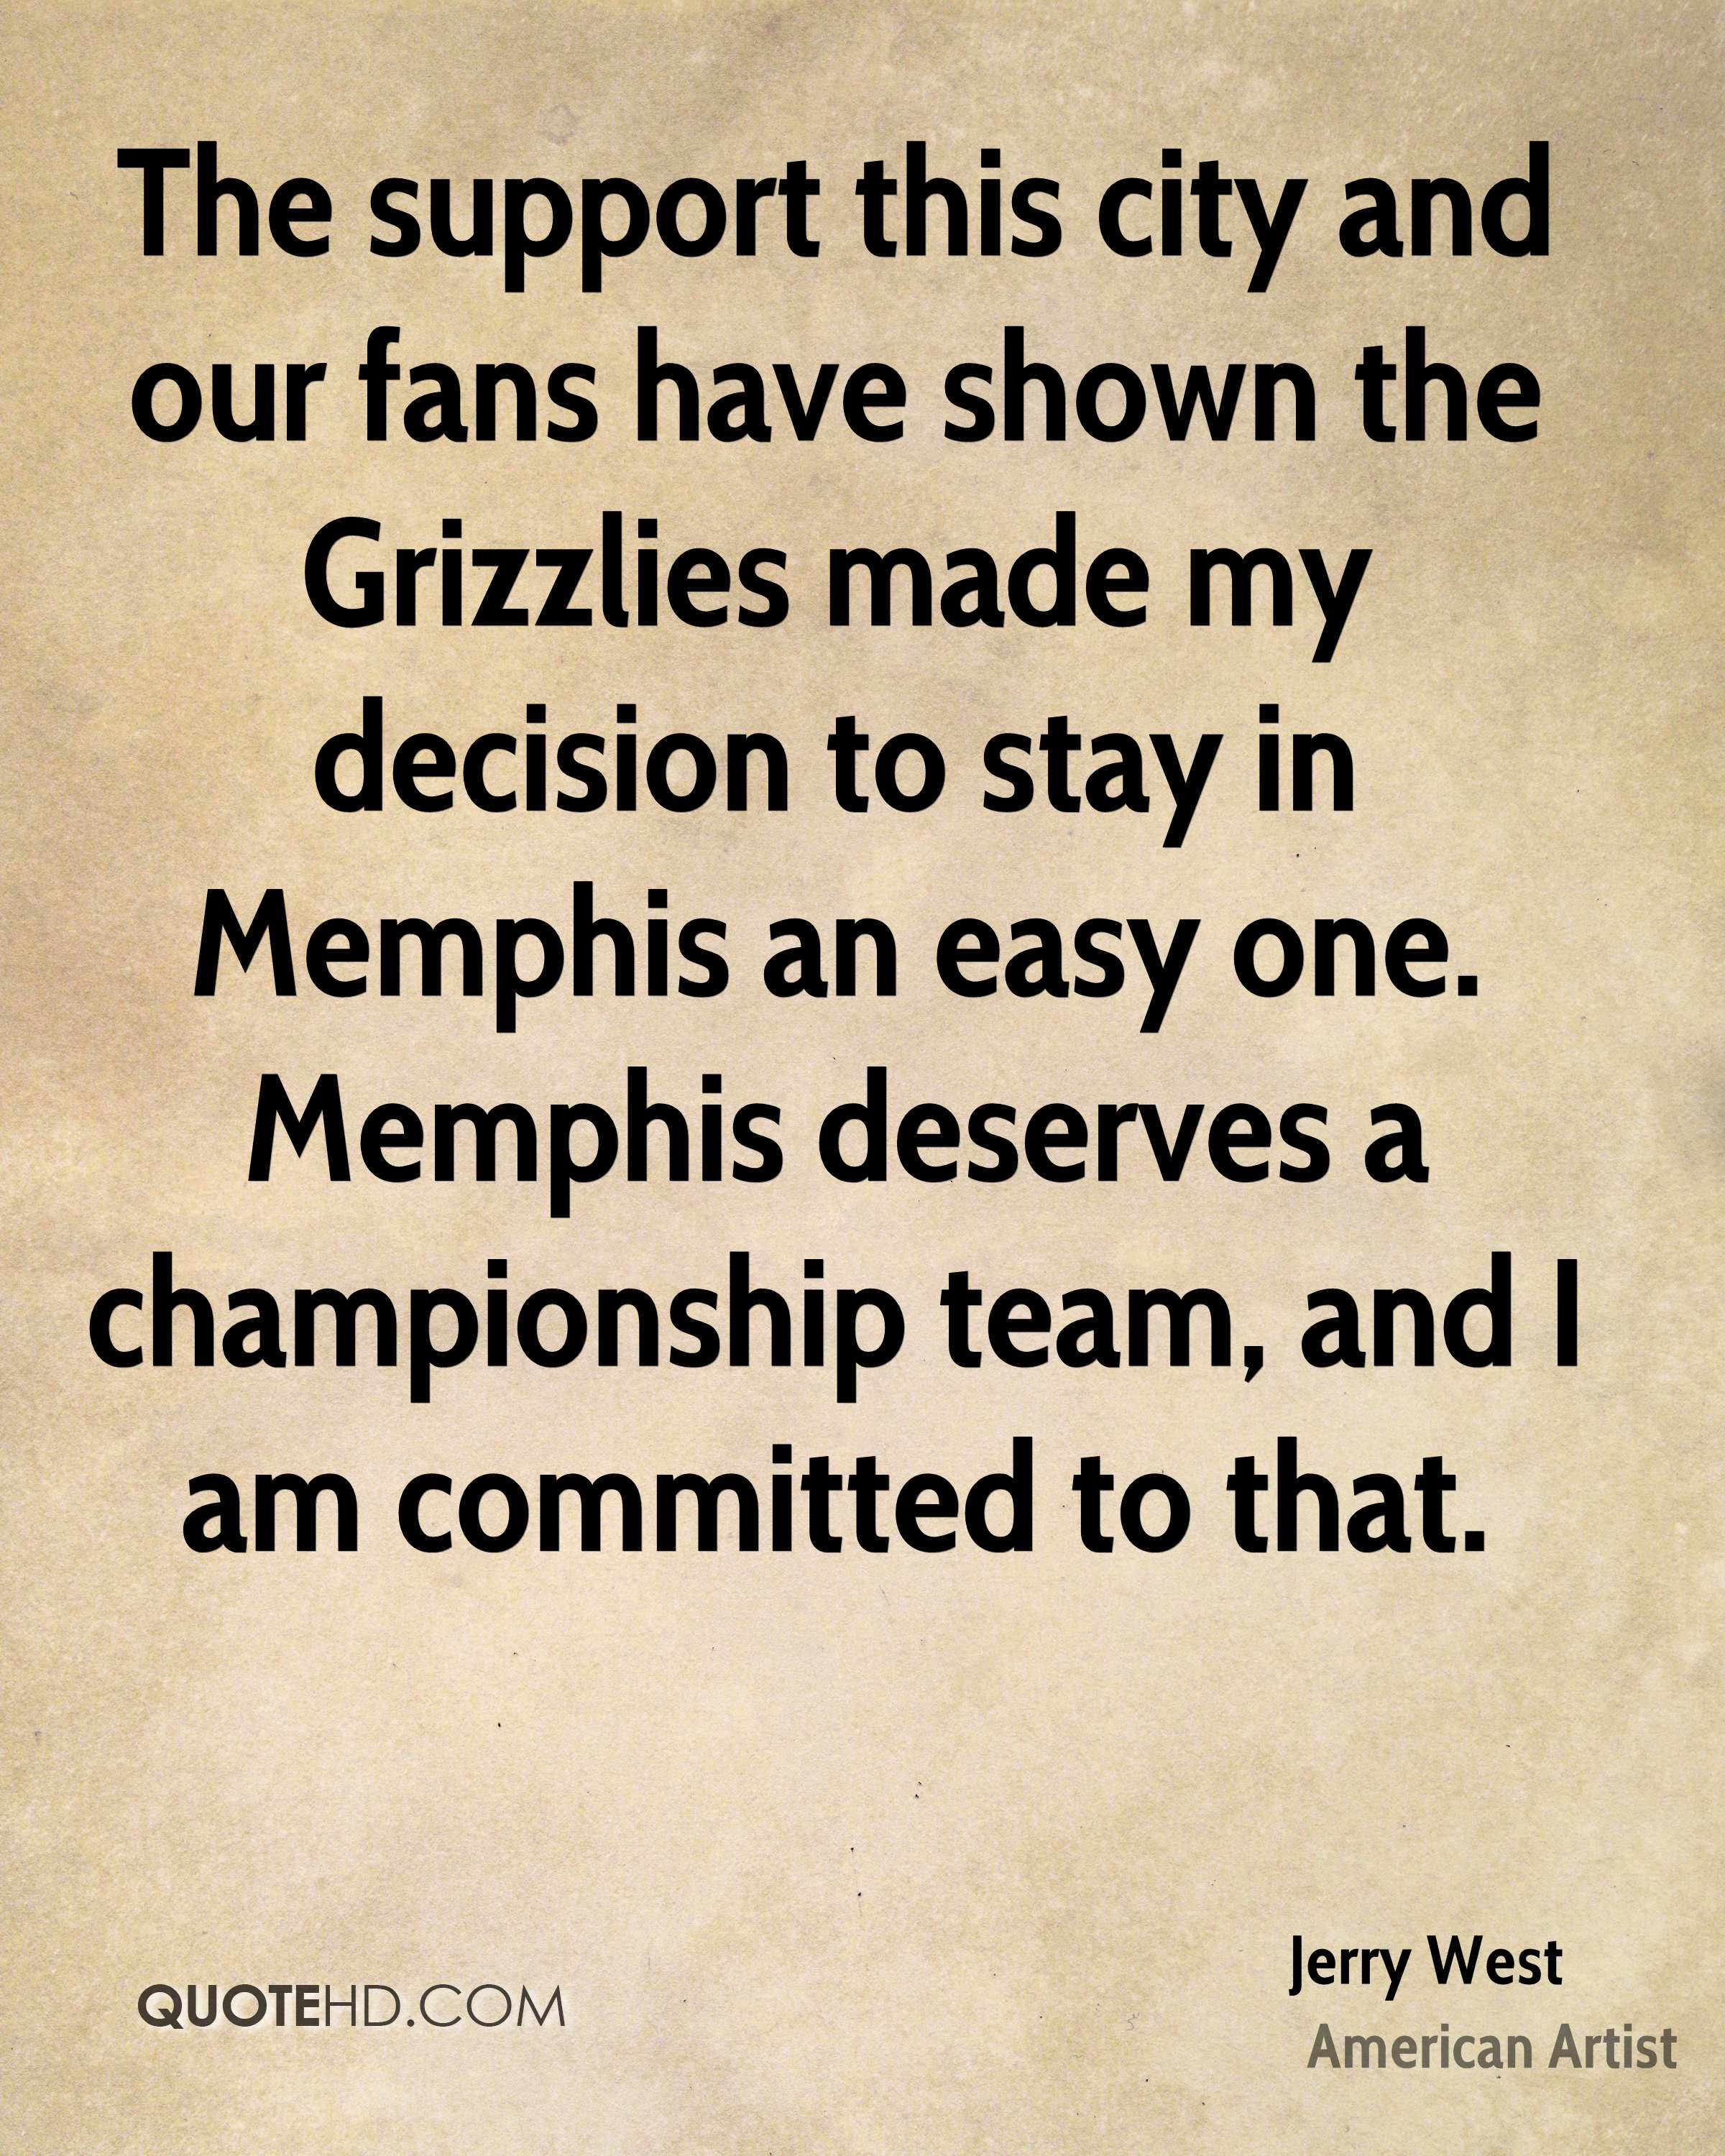 The support this city and our fans have shown the Grizzlies made my decision to stay in Memphis an easy one. Memphis deserves a championship team, and I am committed to that.